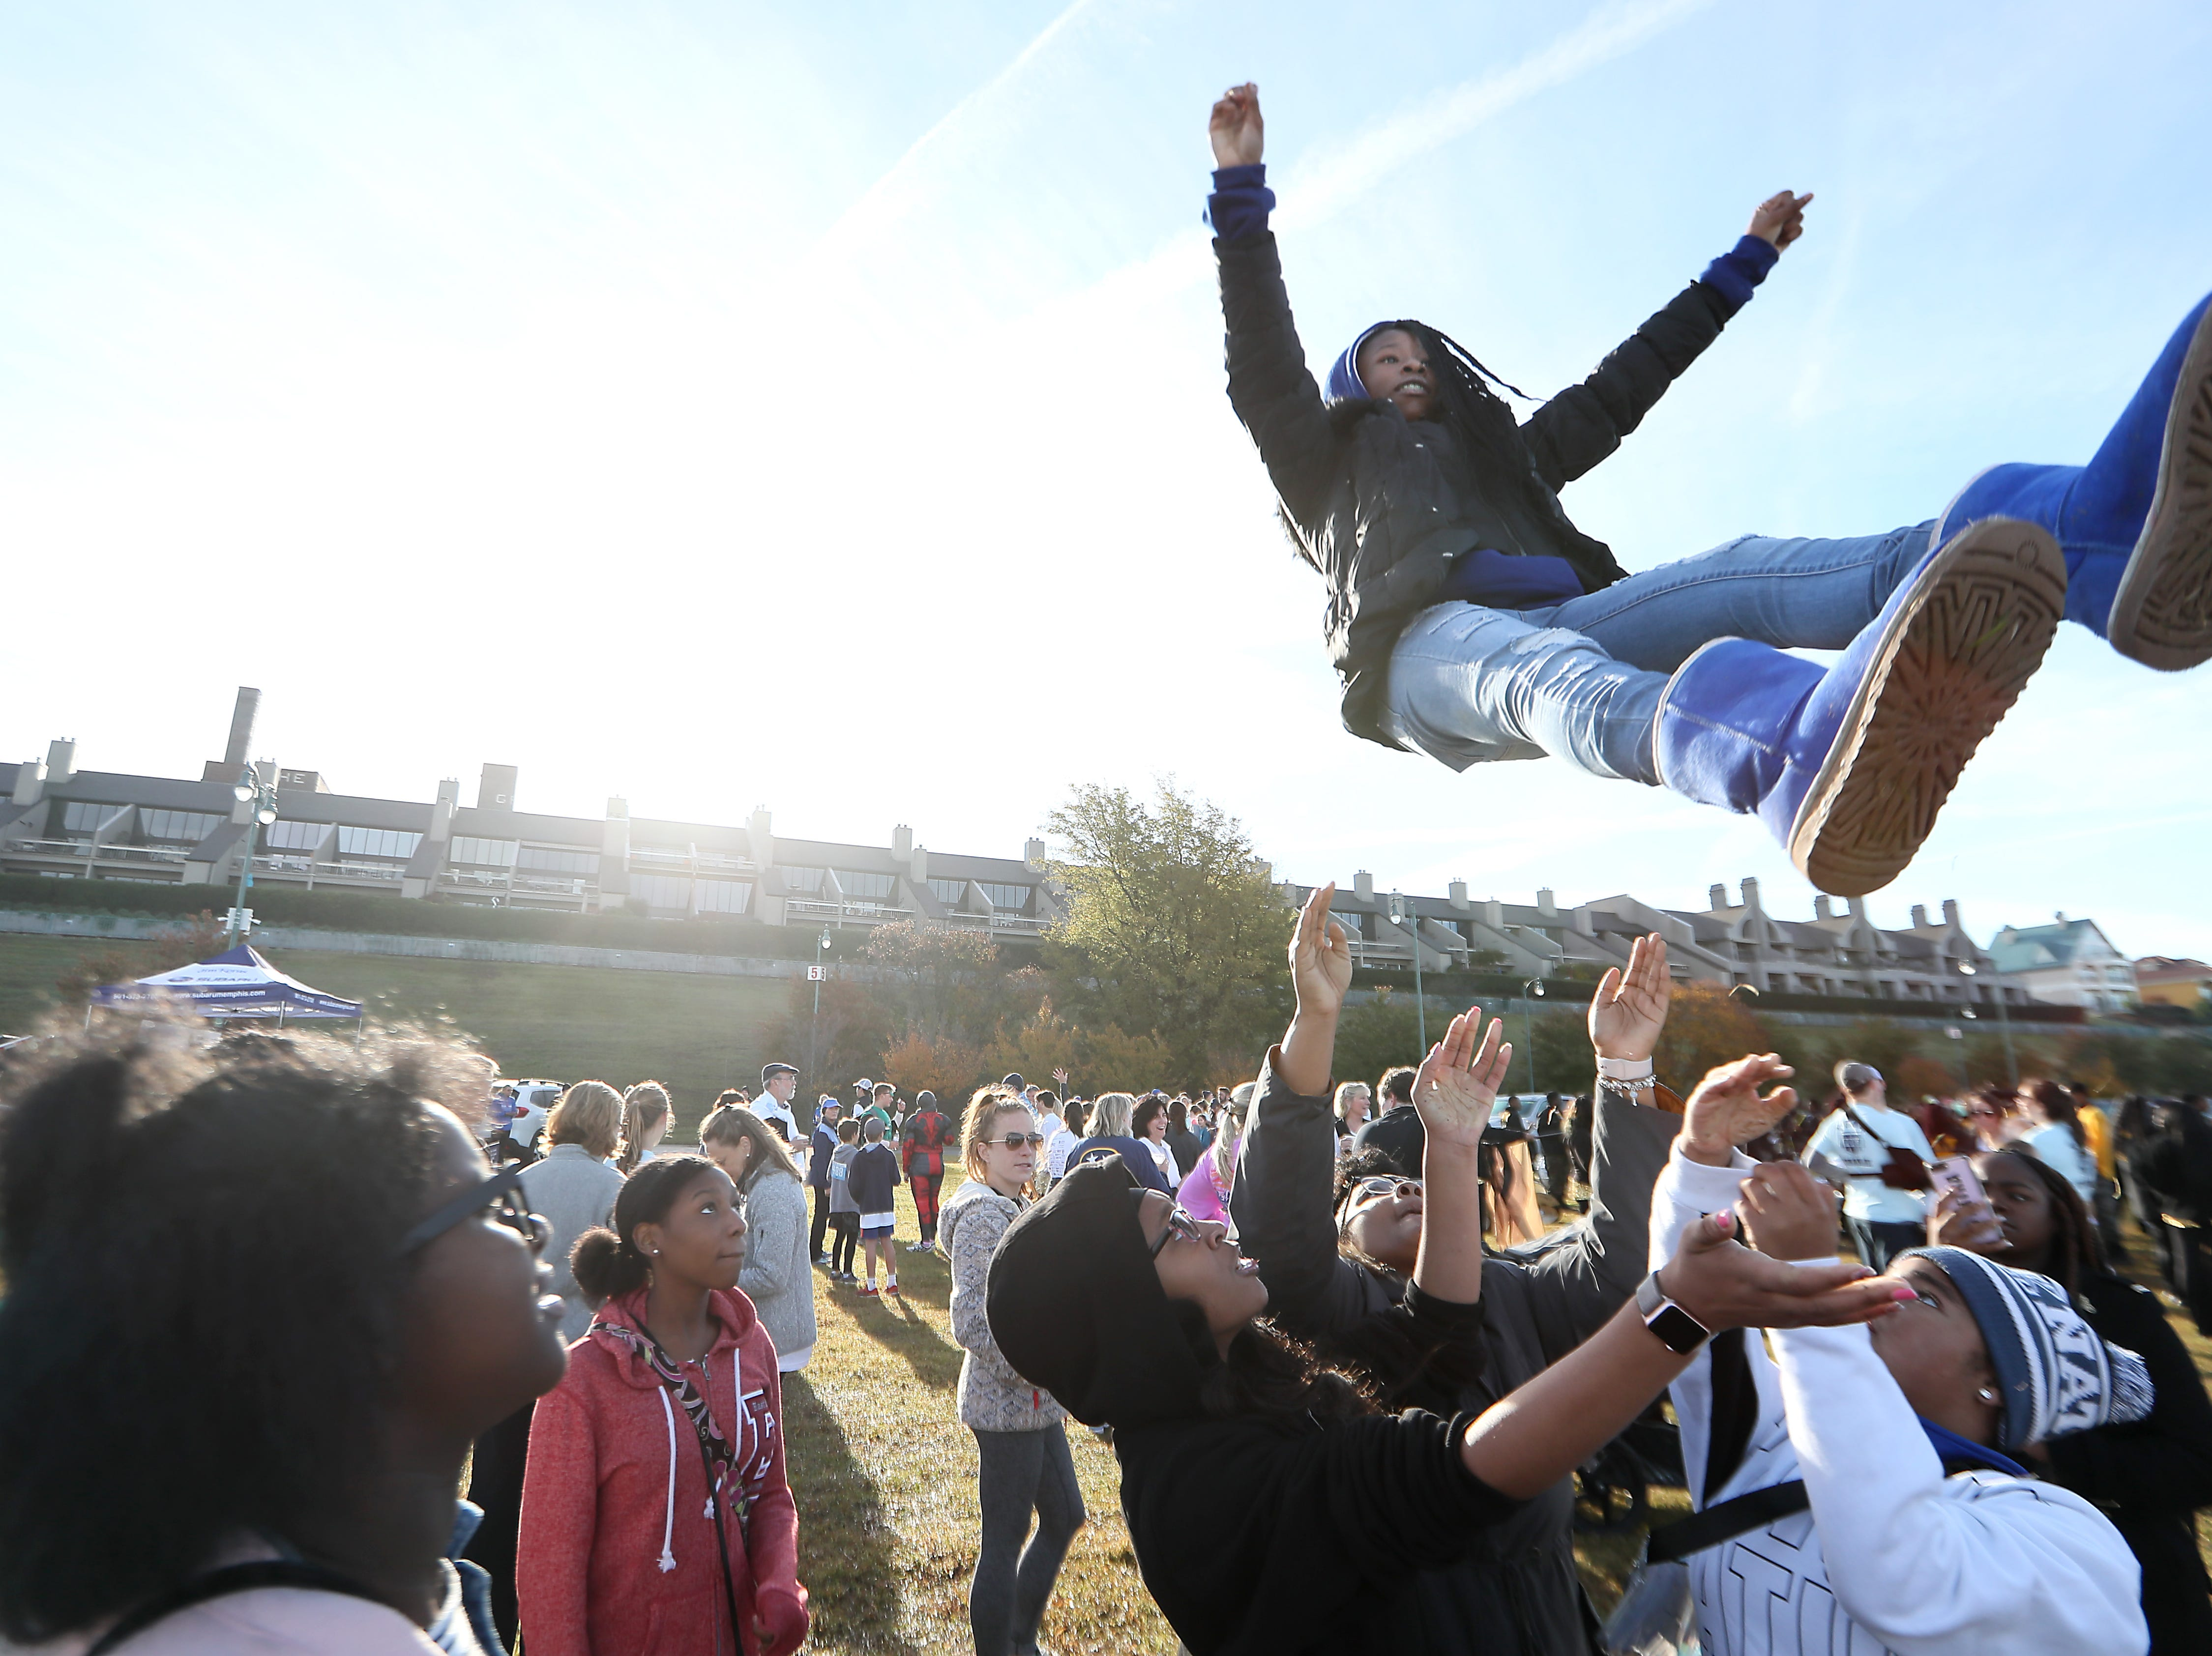 Halei Webb, 14, performs a stunt with the Eastside Cheerleaders at the finish line of the Big River Crossing Half-Marathon and 5K run downtown Memphis Saturday, November 3, 2018.